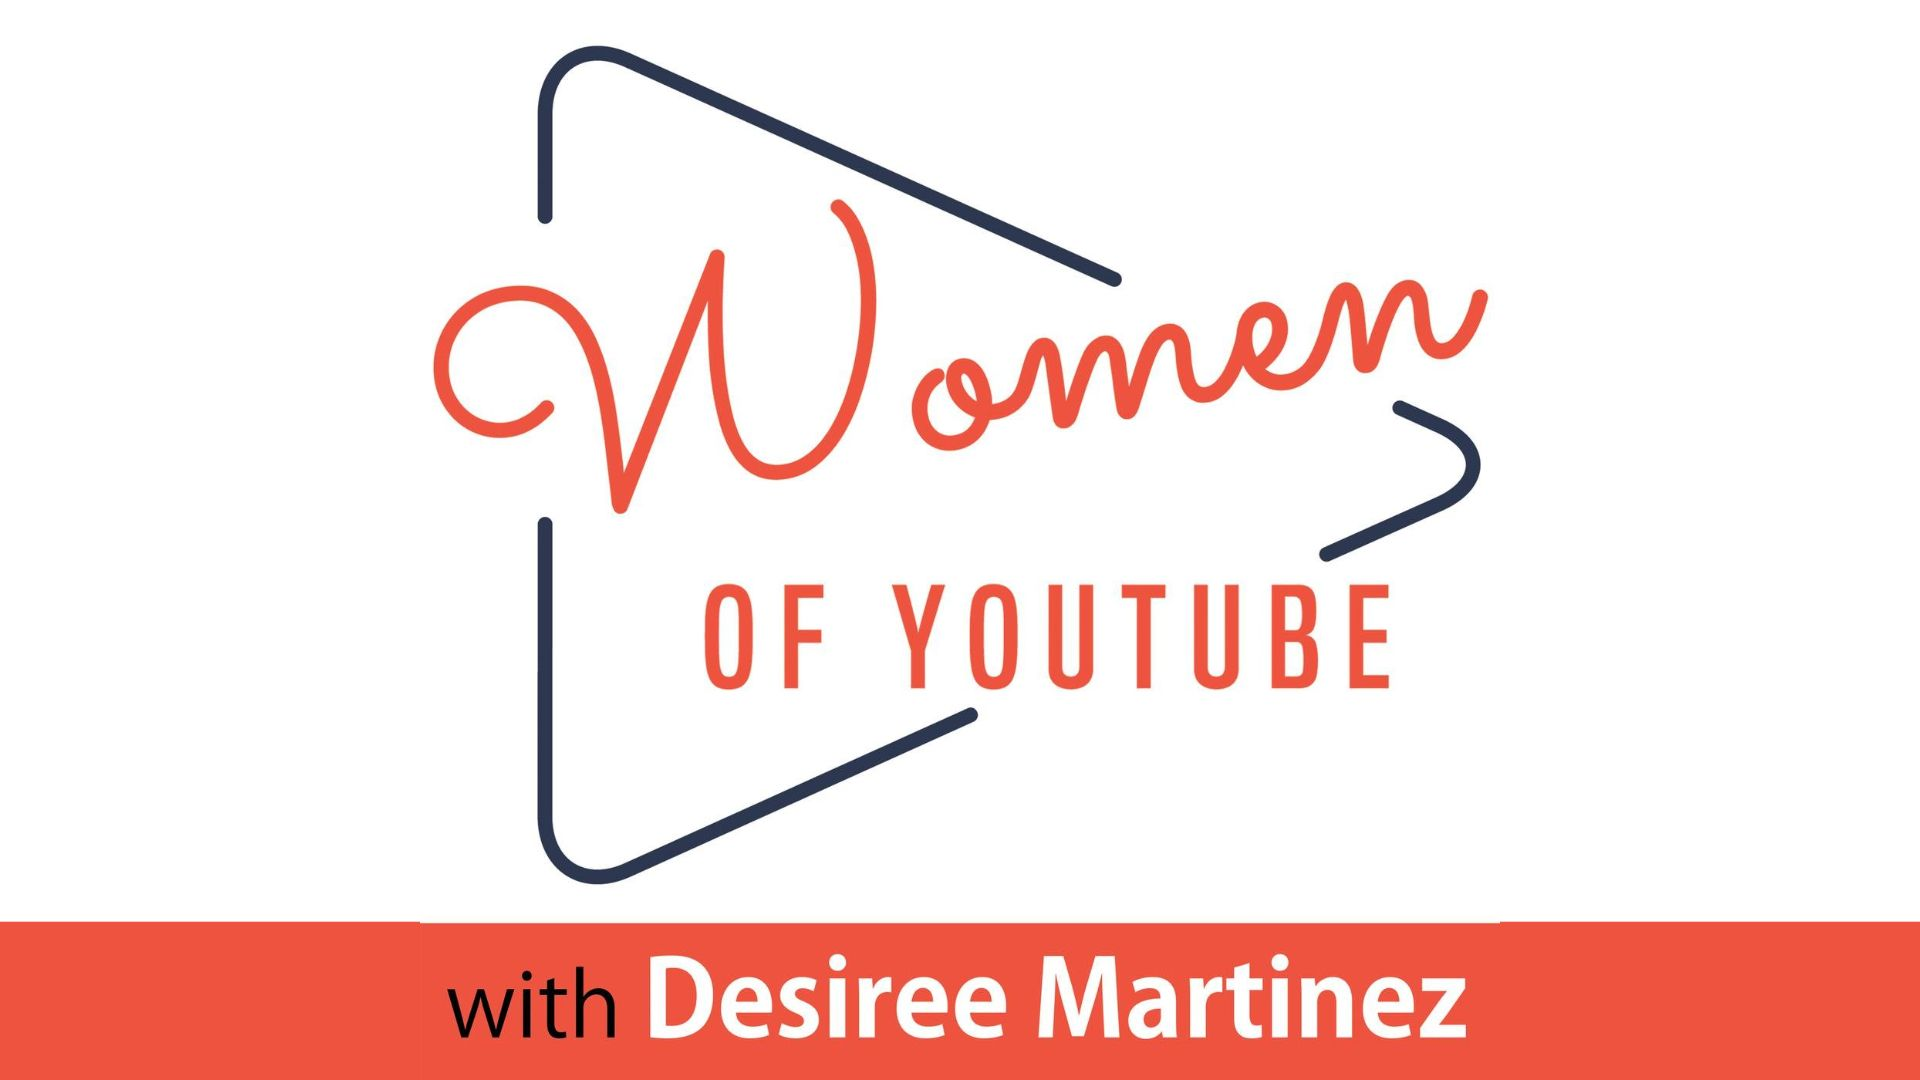 The cover art for the Women of YouTube podcast.